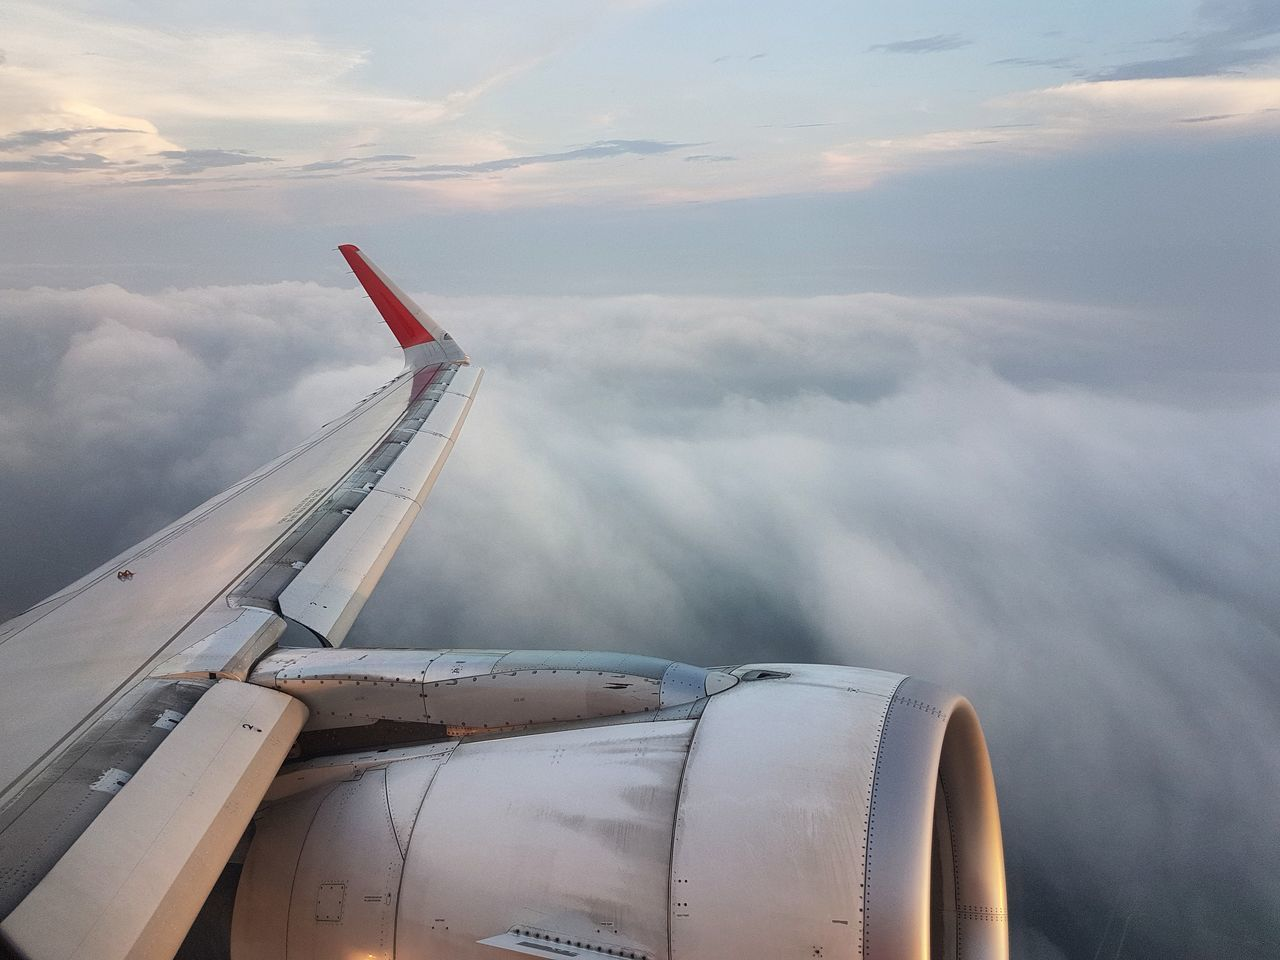 Airplane Transportation Flying Aircraft Wing Aerial View Air Vehicle Travel No People Cloud - Sky Outdoors Aerospace Industry Commercial Airplane Water Nature Day Sky Airplane Wing Traveling EyeEm Nature Flying High Above The Clouds Sky